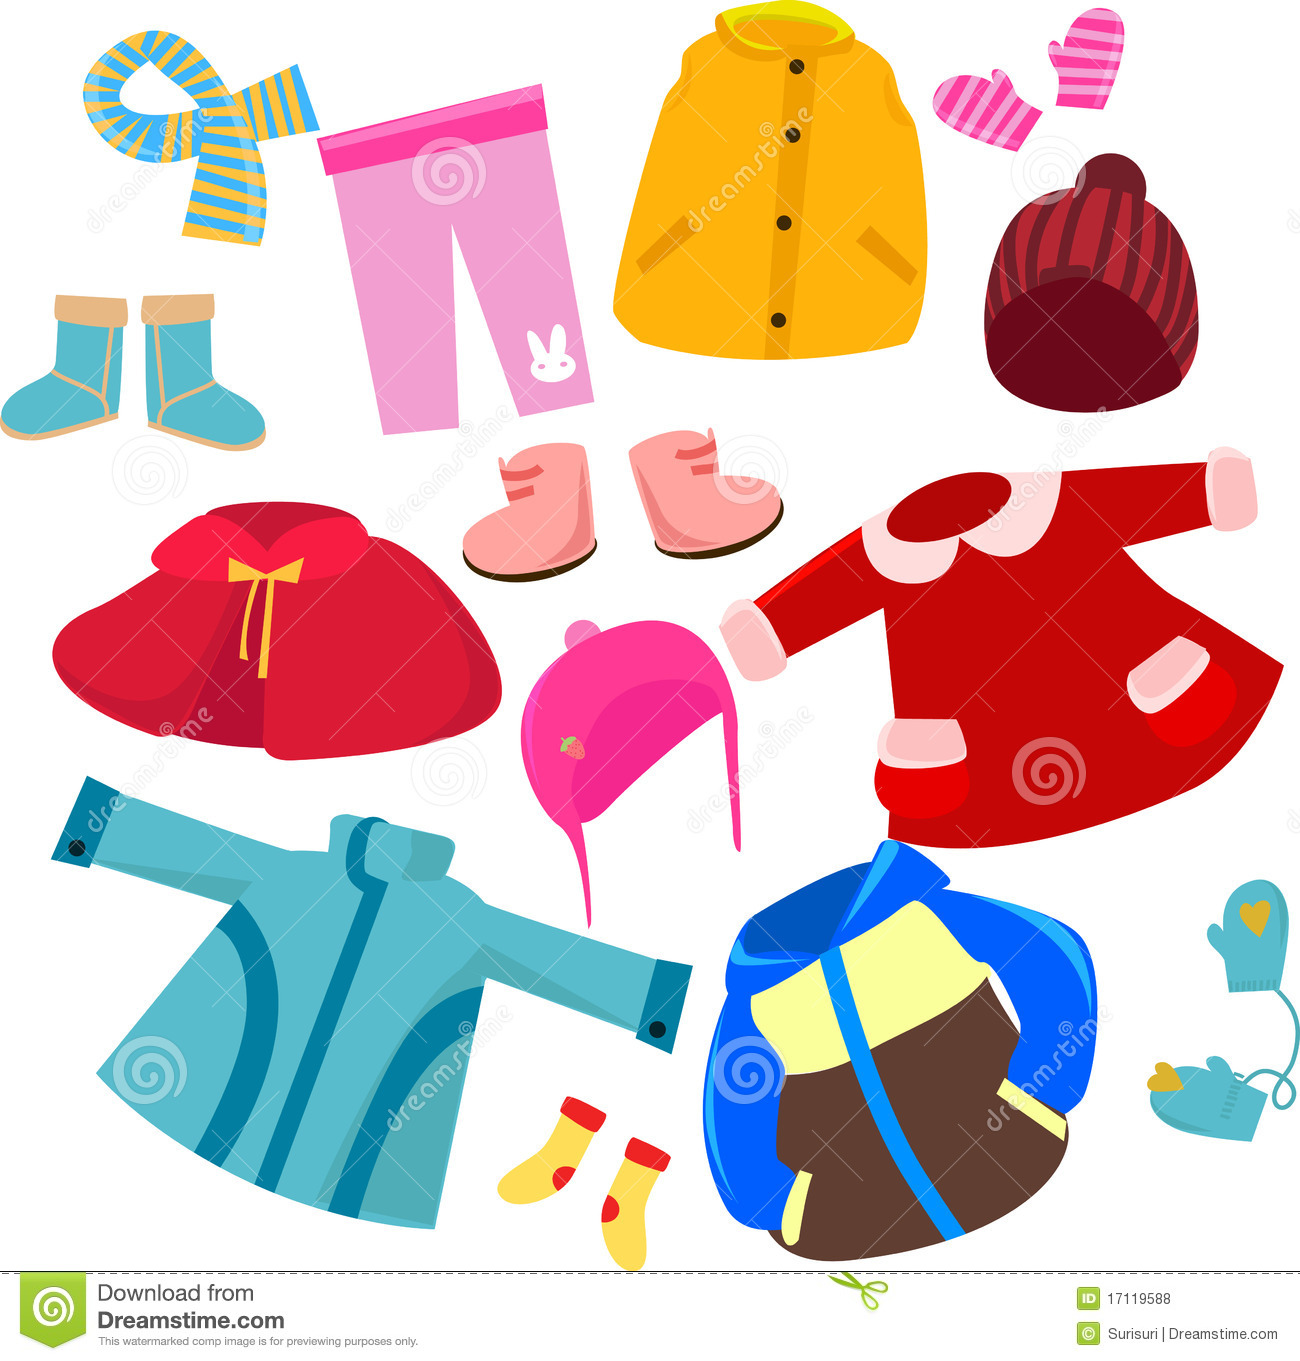 Clothes clipart for kids.